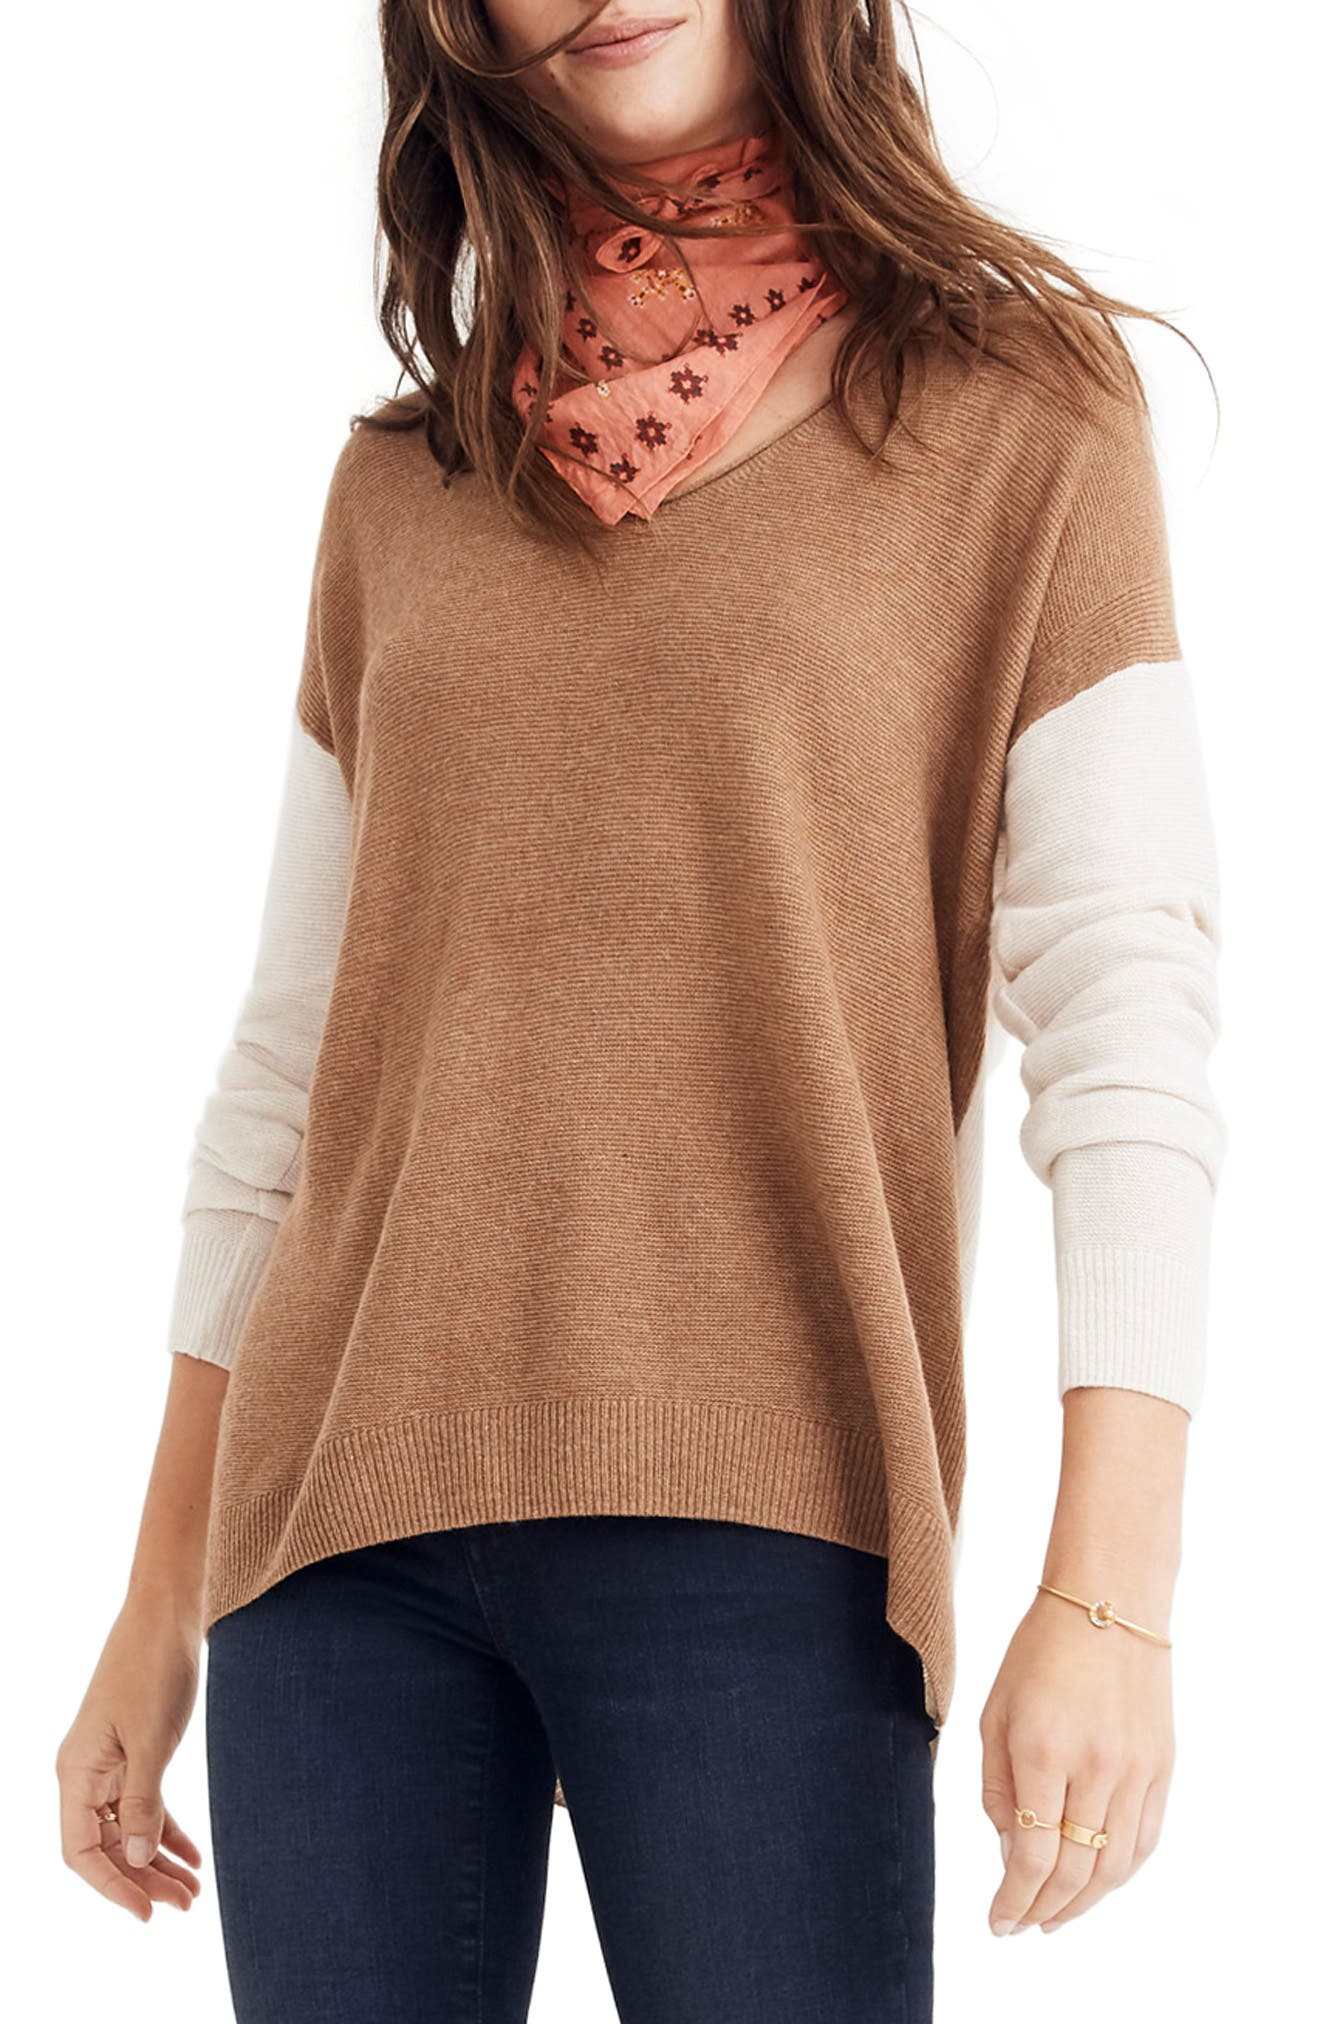 MADEWELL, Kimball Colorblock Sweater, Main thumbnail 1, color, 021